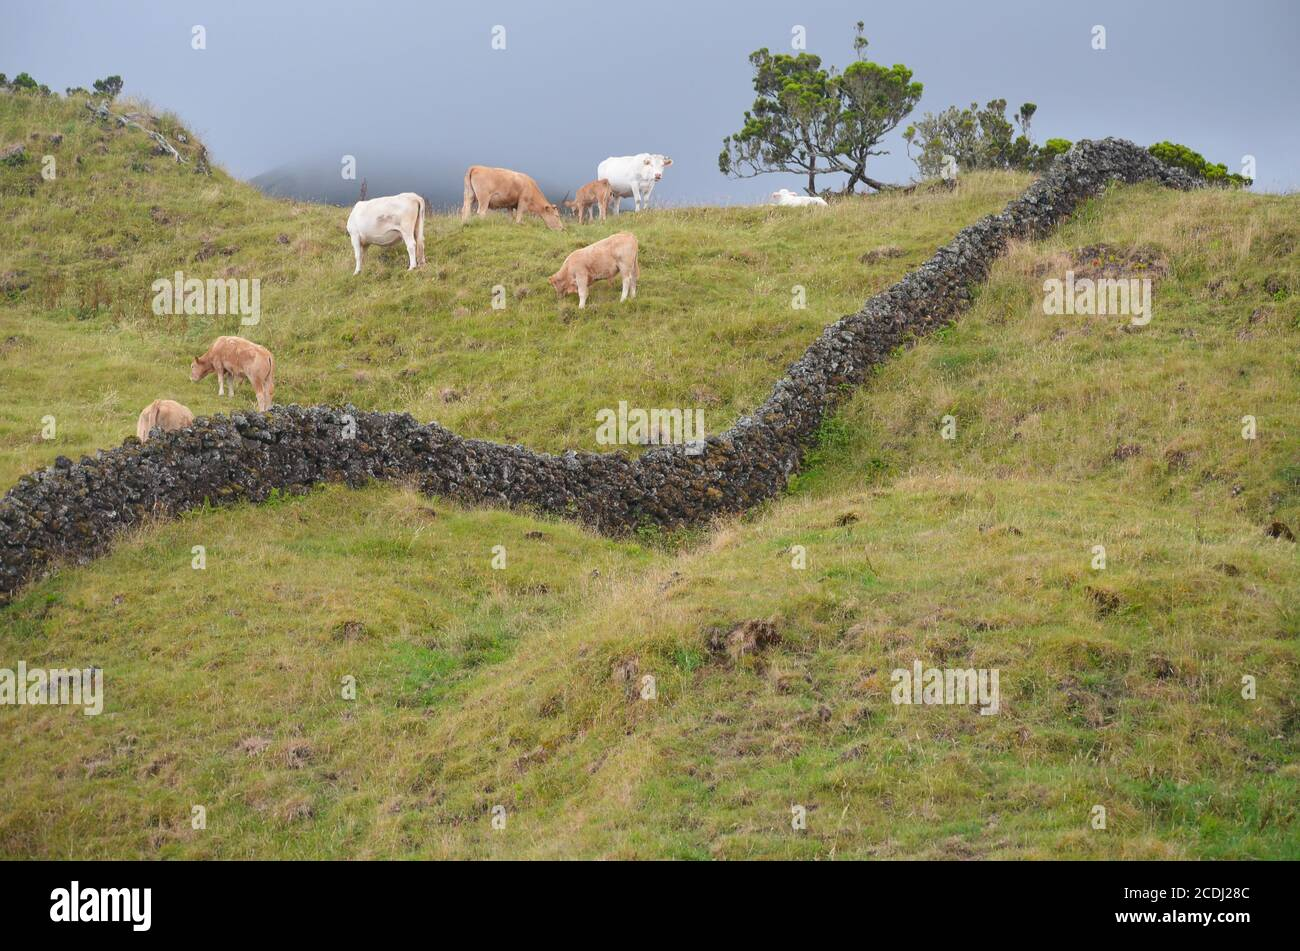 Cattle in Pico island, Azores archipelago, one of Europe's most rural regions Stock Photo